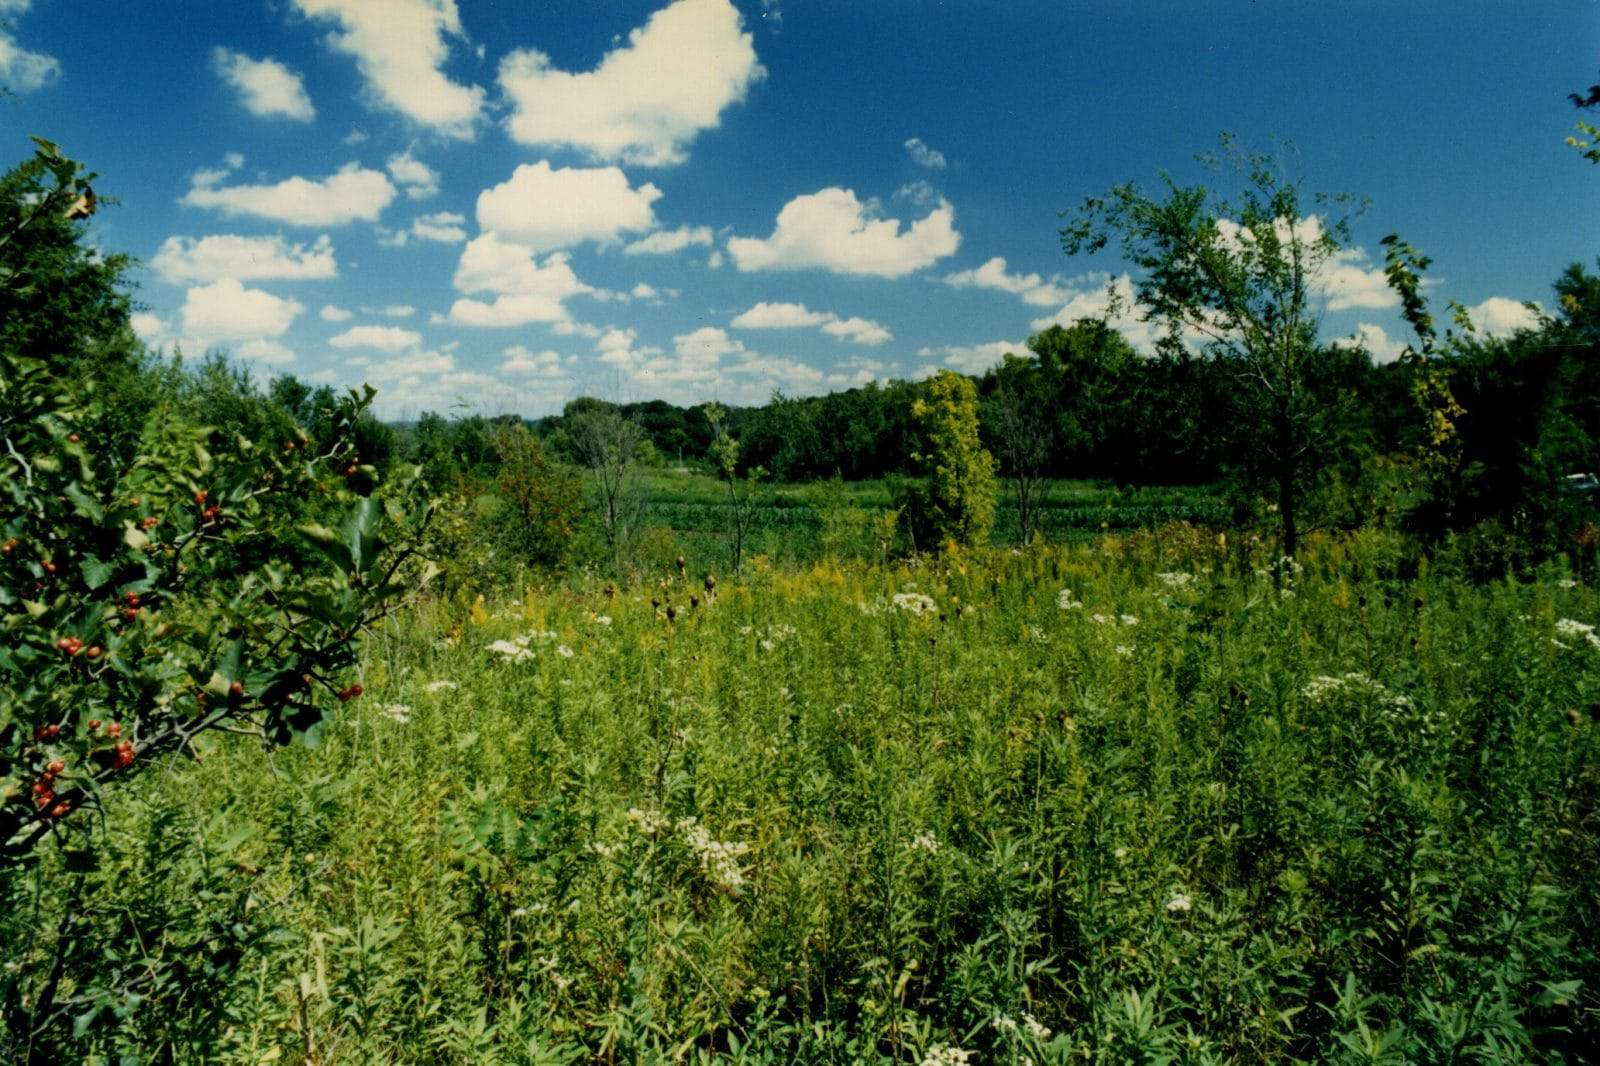 Additional Photos From The Diffley Eagan Land